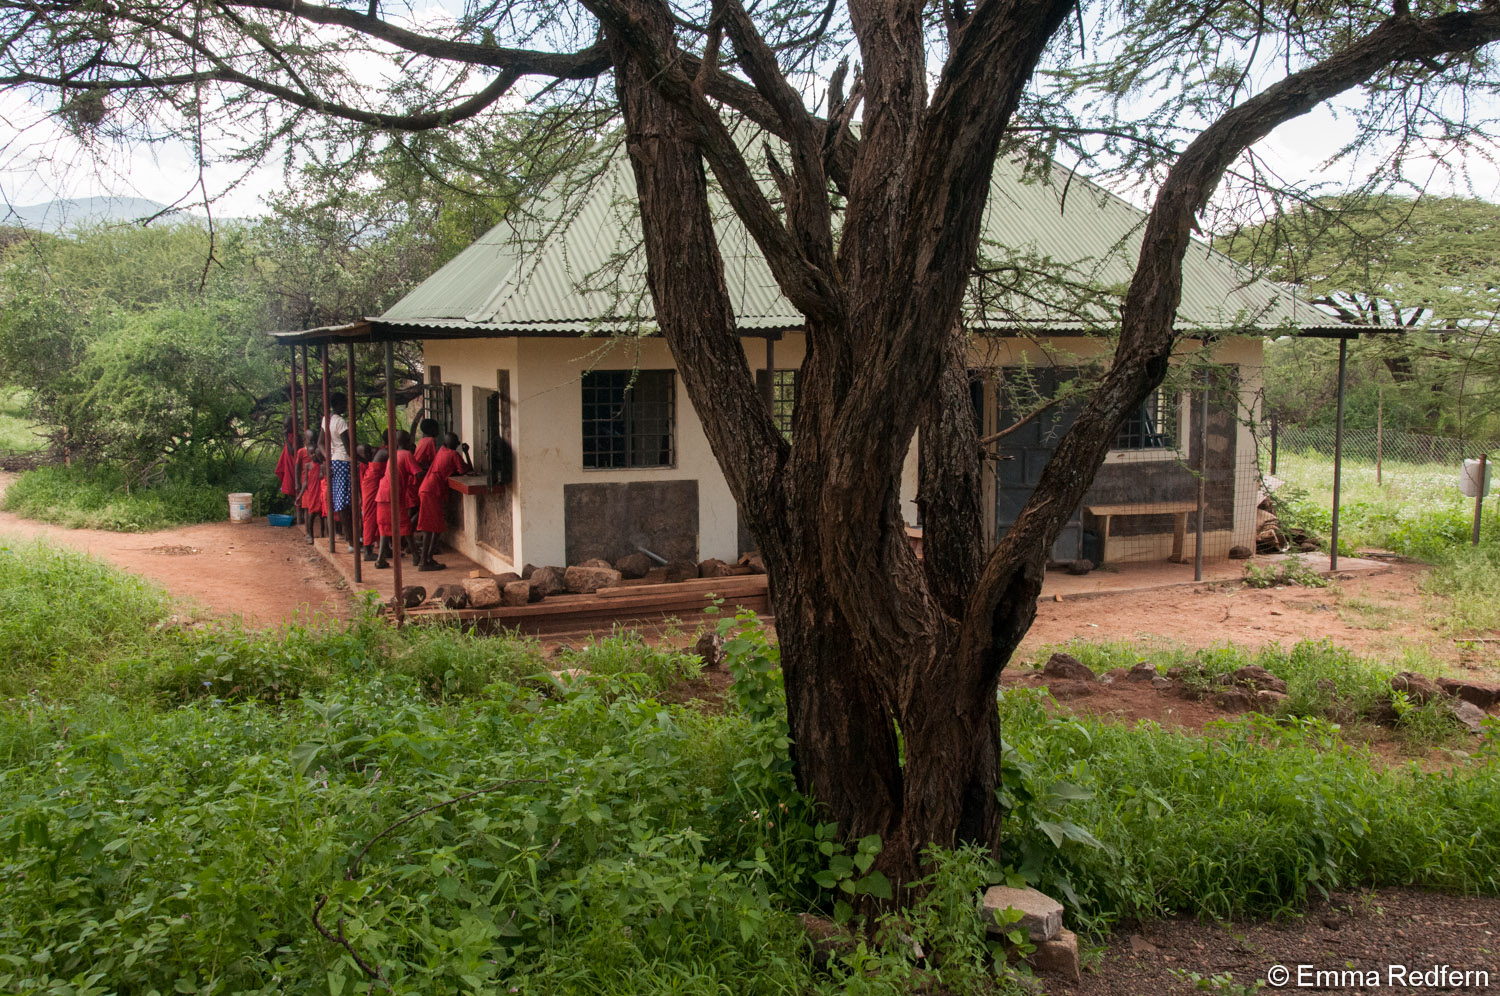 The school kitchen surrounded by greenery